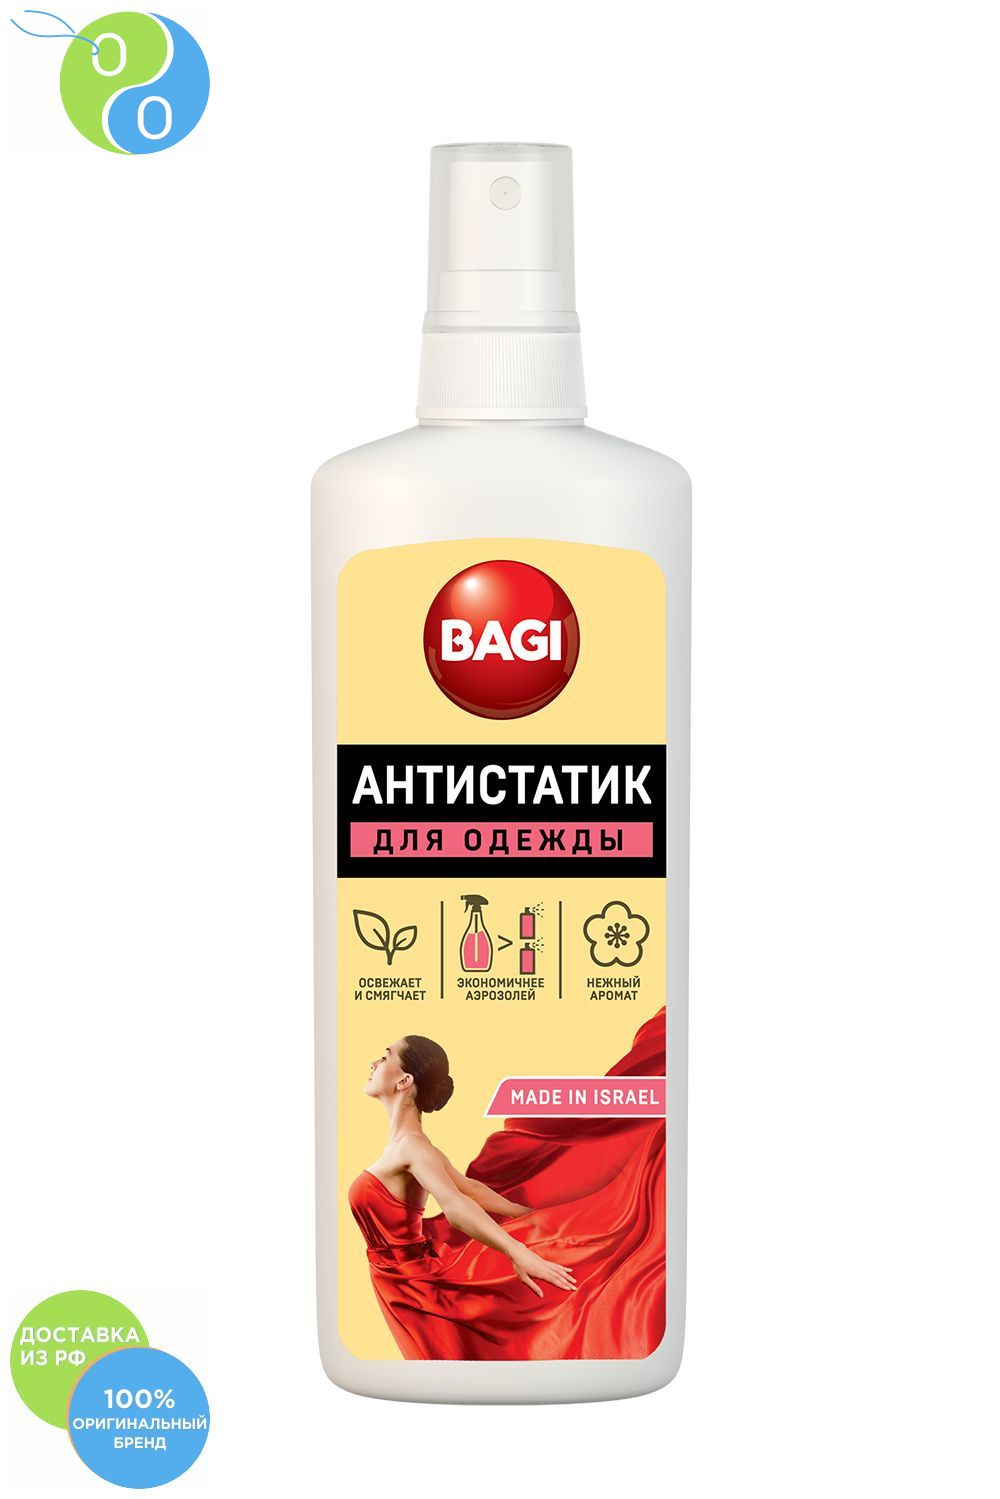 Antistatic Bagi SPRAY 200 ml,Antistatic clothes. Means for neutralizing static electricity from all kinds of garments, textiles and carpets. , A liquid spray, a slight odor ,, 8in1 cat stain and odor exterminator nm jfc s